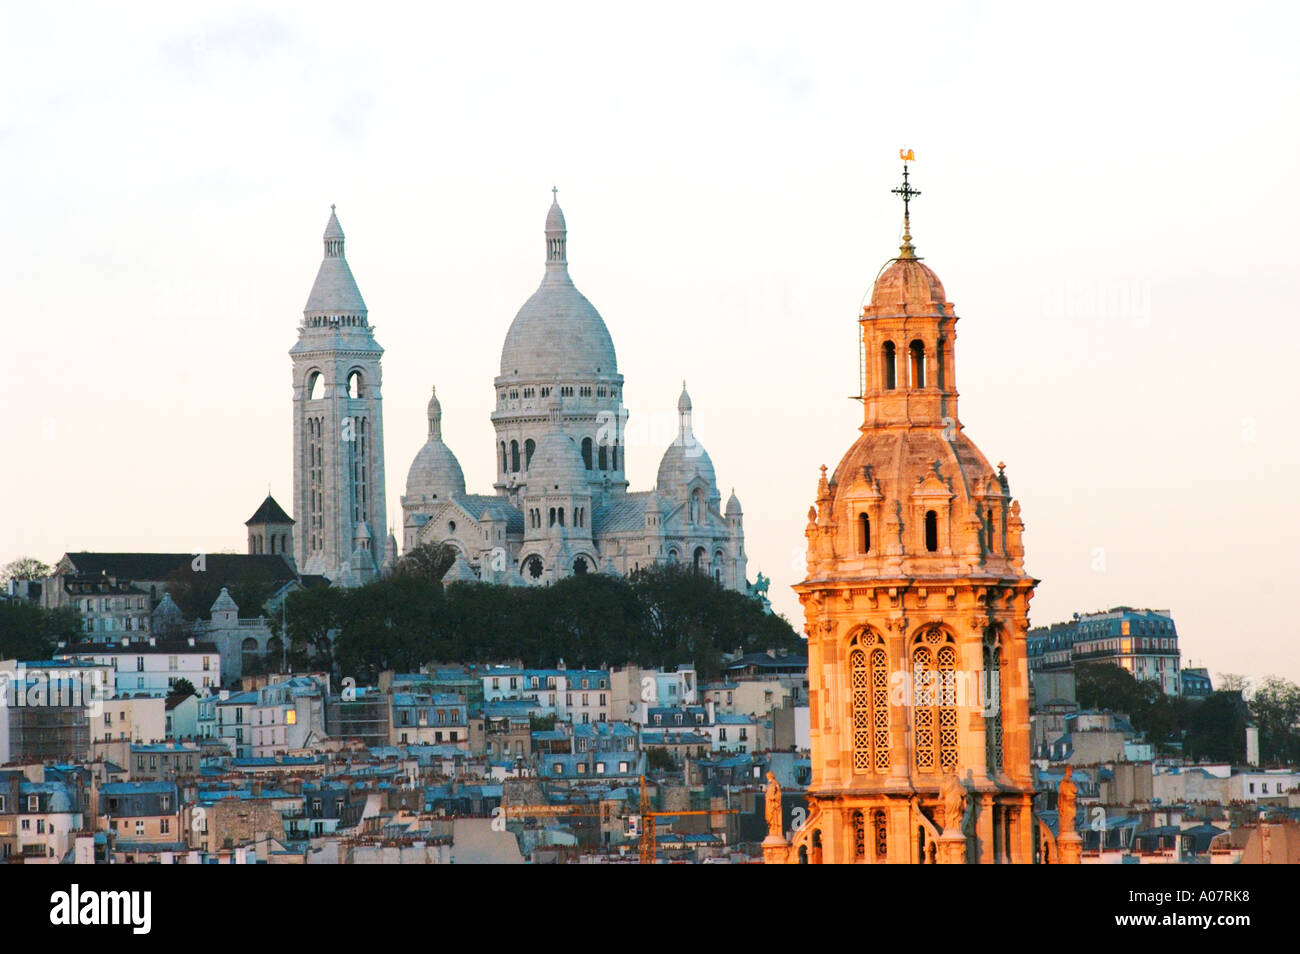 Paris France, Overview 'Sacre Coeur' Basilica on Montmartre Hill with 'Holy Trinity Church' Cityscape, urban landscapes, Scenic - Stock Image